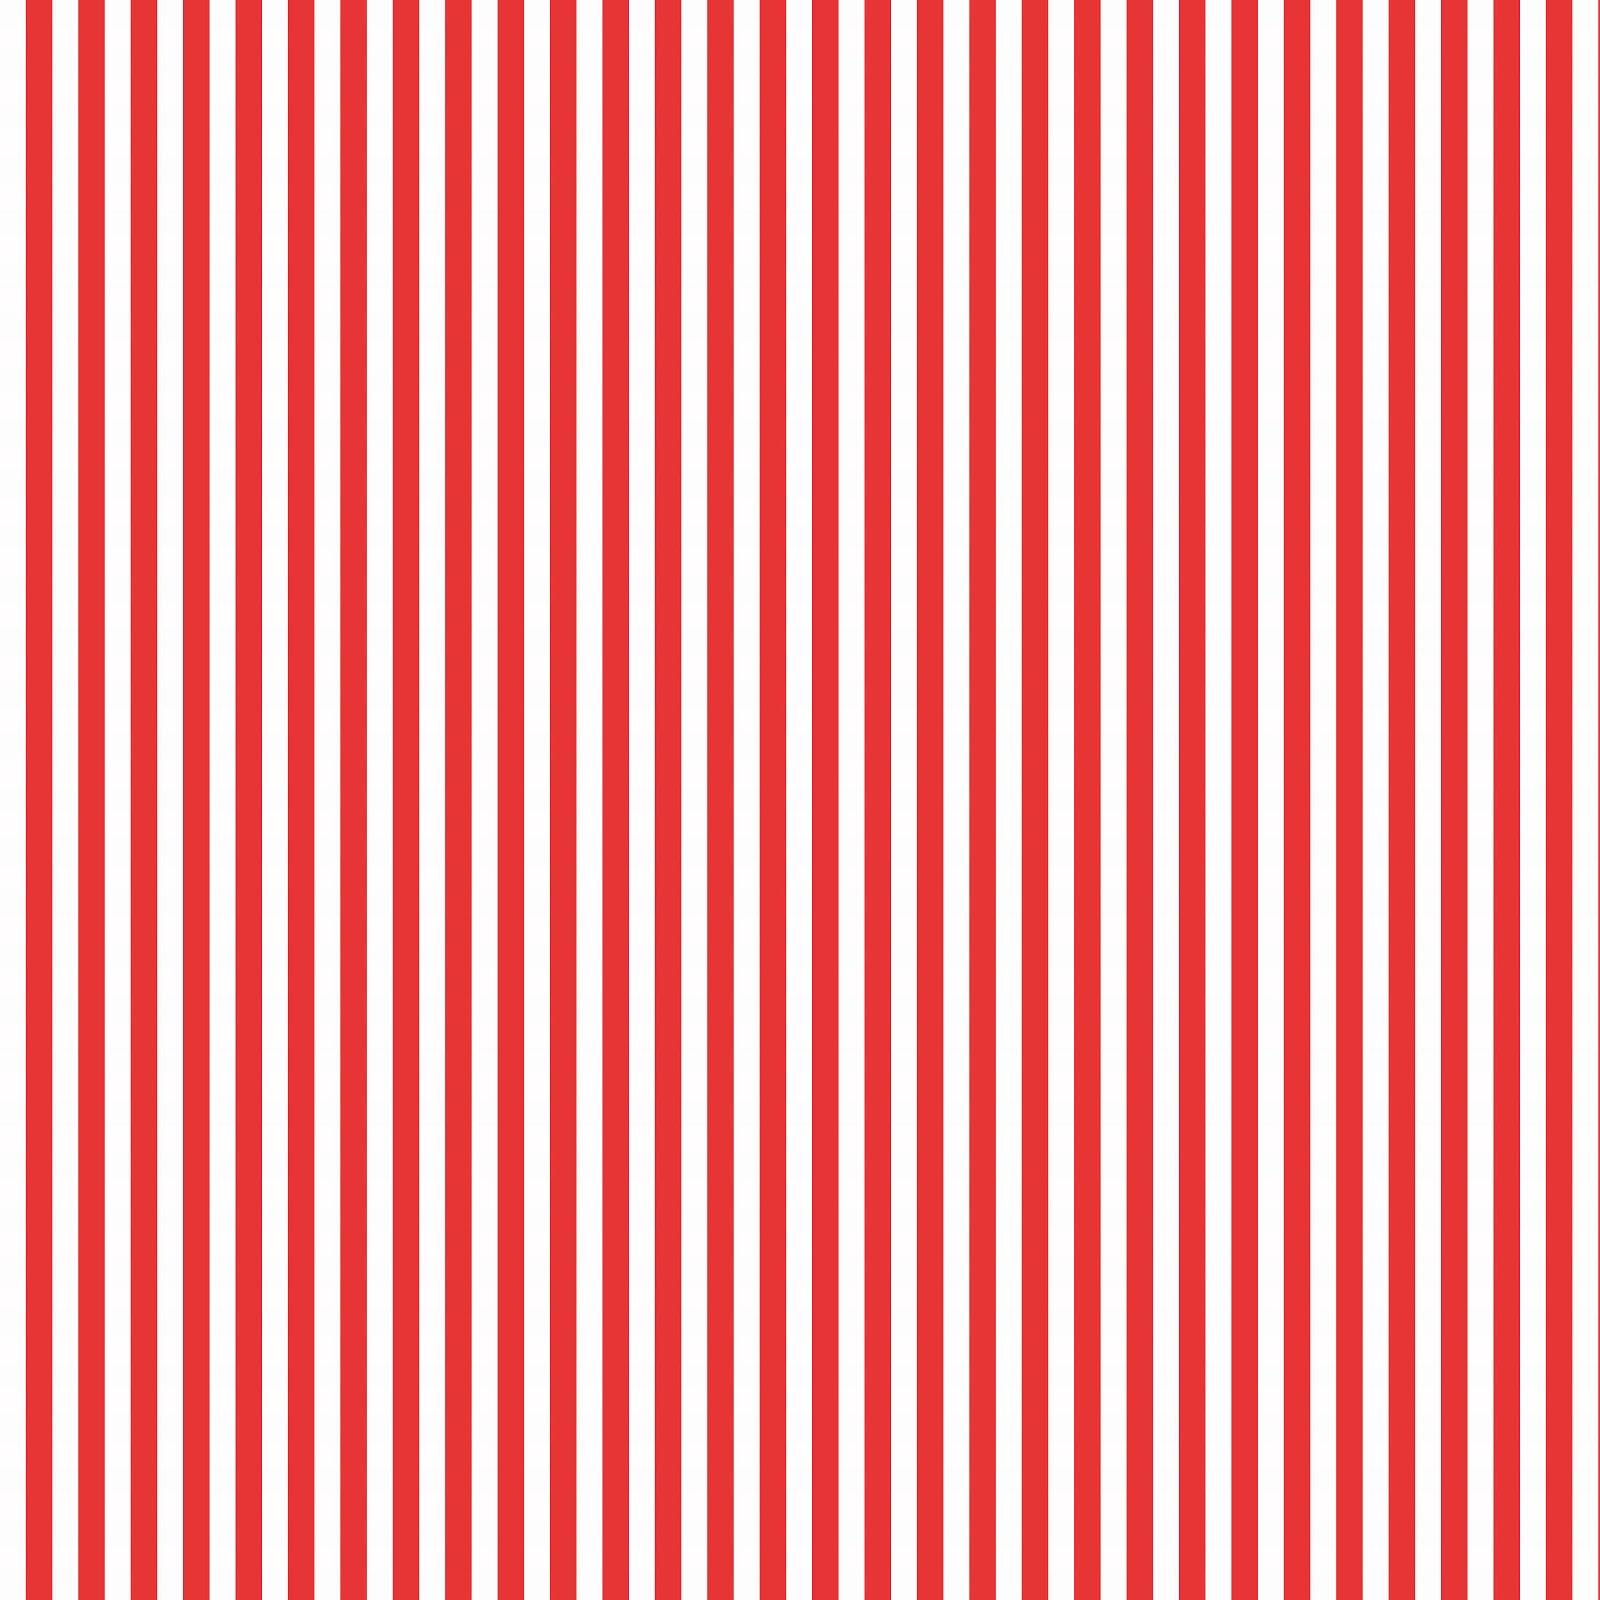 Pink Dot/Stripe 12x12 Cardstock | Simple Stories |Red And White Striped Cardstock